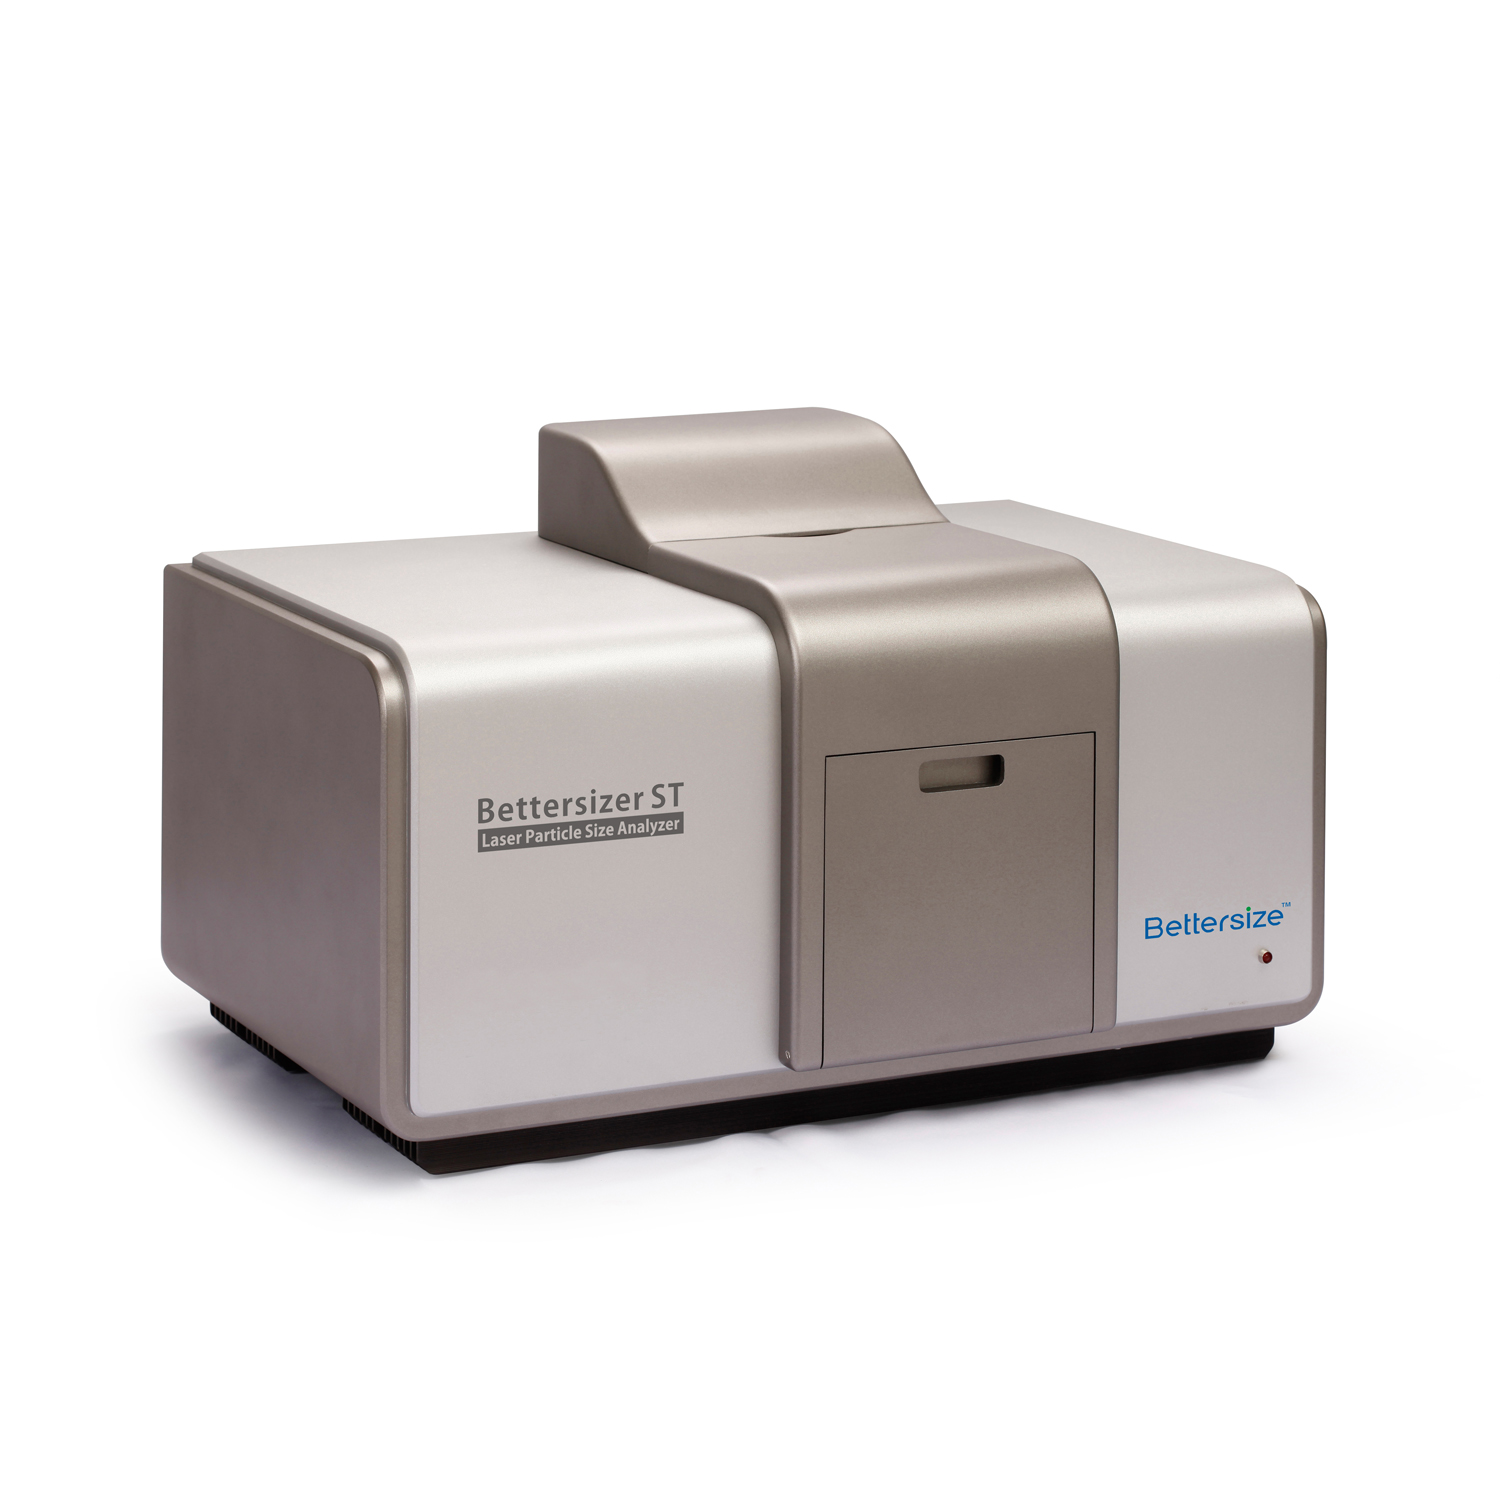 Mie Scattering Theory Laser Diffraction Particle Size Analyzer